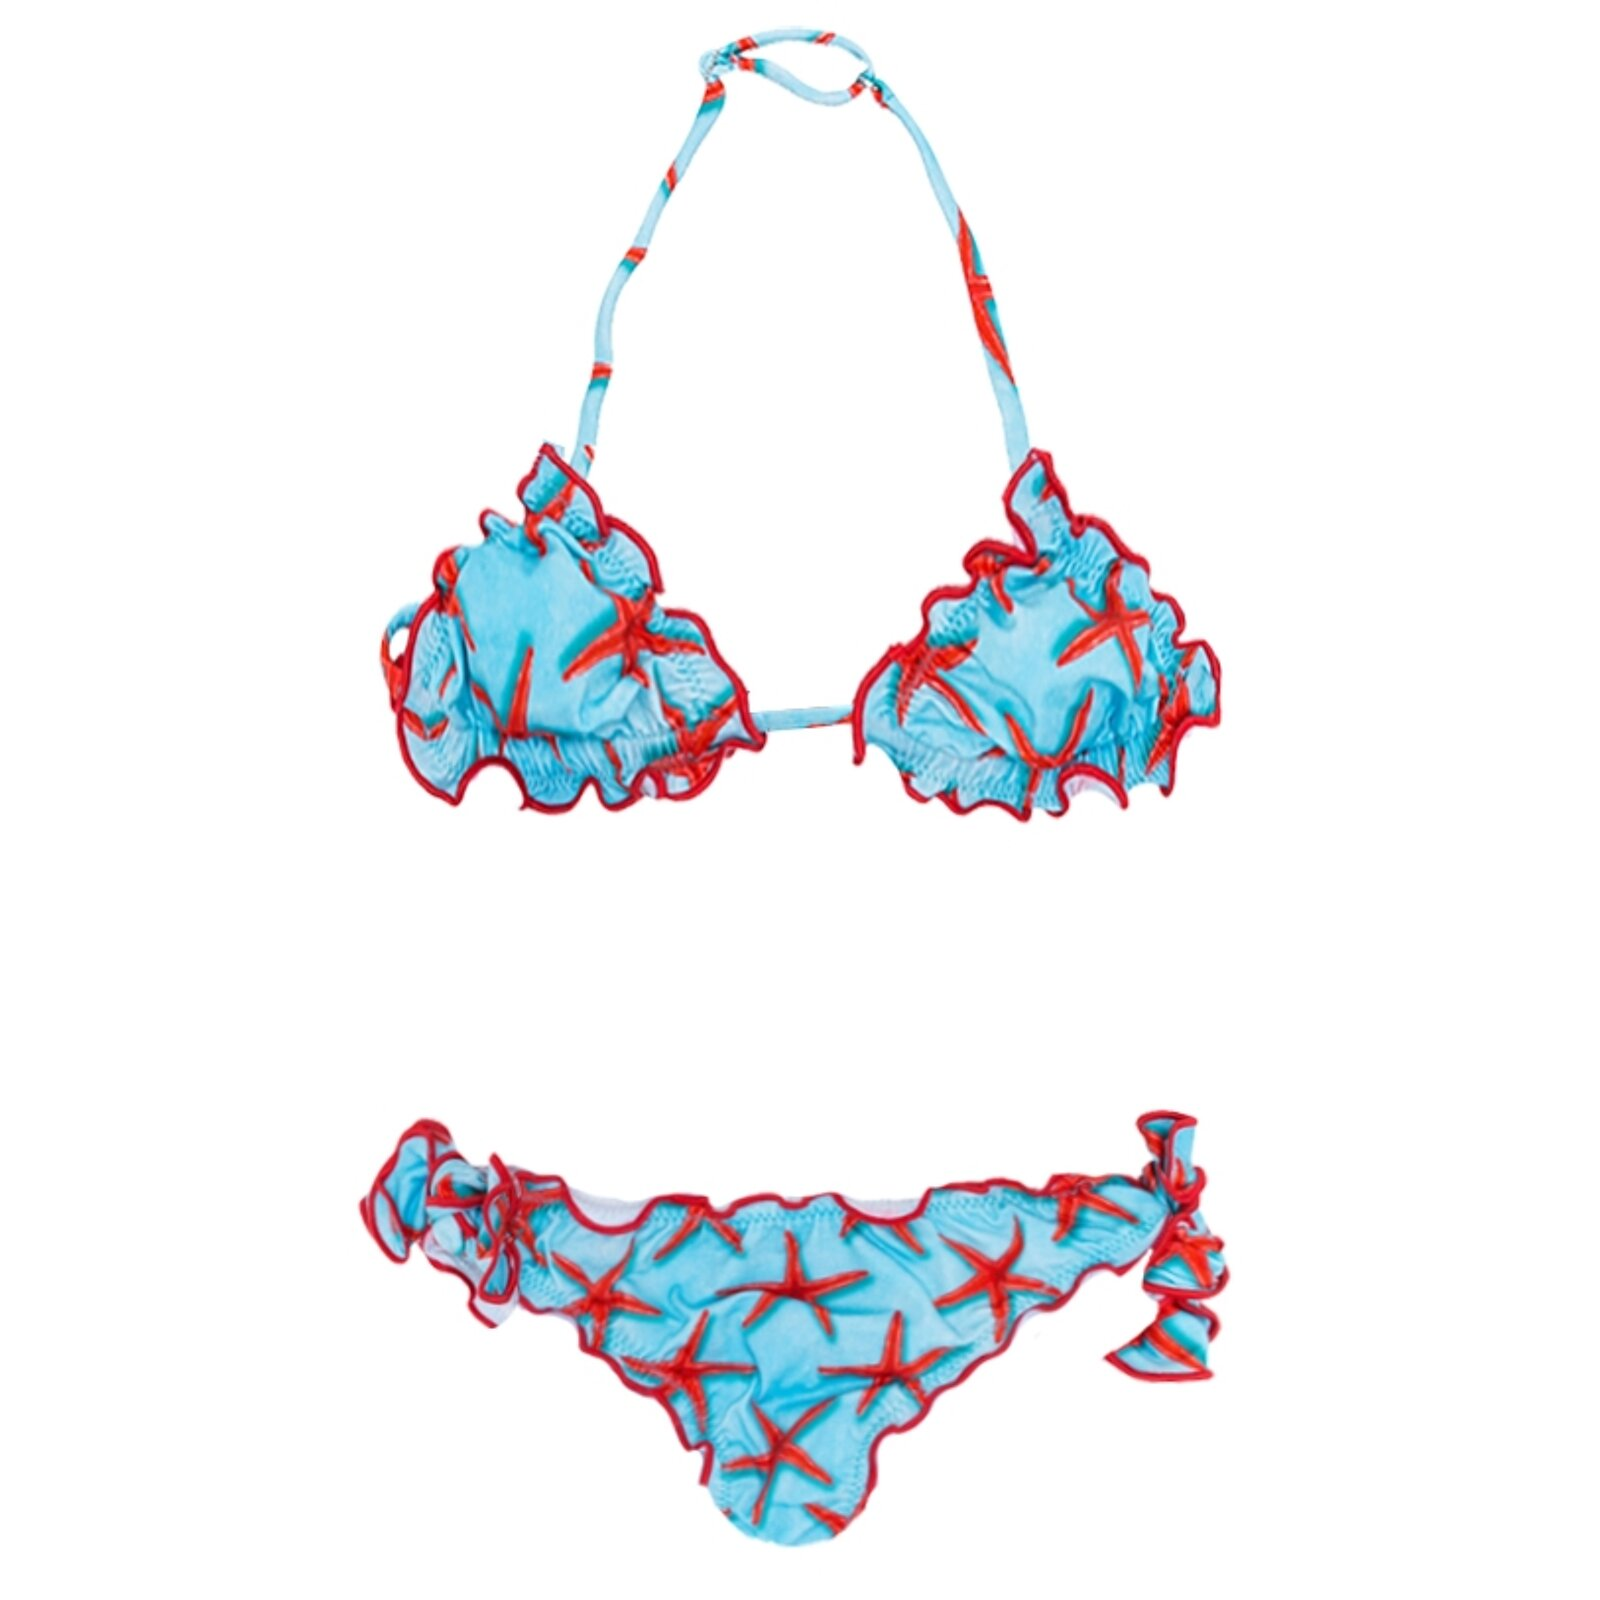 Bikini Bambina Bluette Con Stelle Marine - MC2 Saint Barth Junior